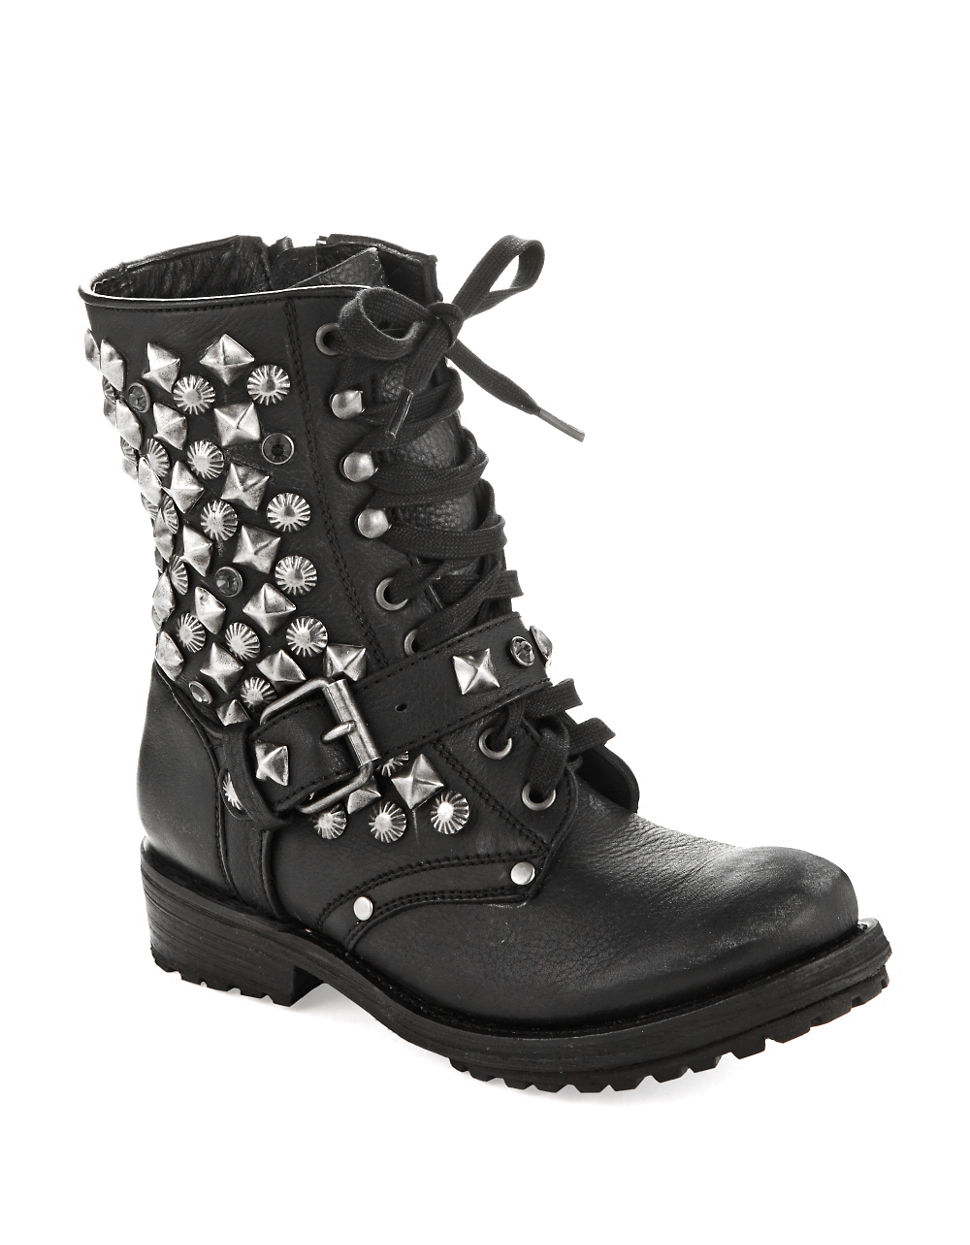 Elegant The Traditional Black Laceup Boot Prevails, And There Is No Limit To The Styling Options Regardless Of Your Personal Style, Black Combat Boots Can Be Incorporated  Band Tees And Studded Belts Thrift Stores Are The Ideal Place To Find